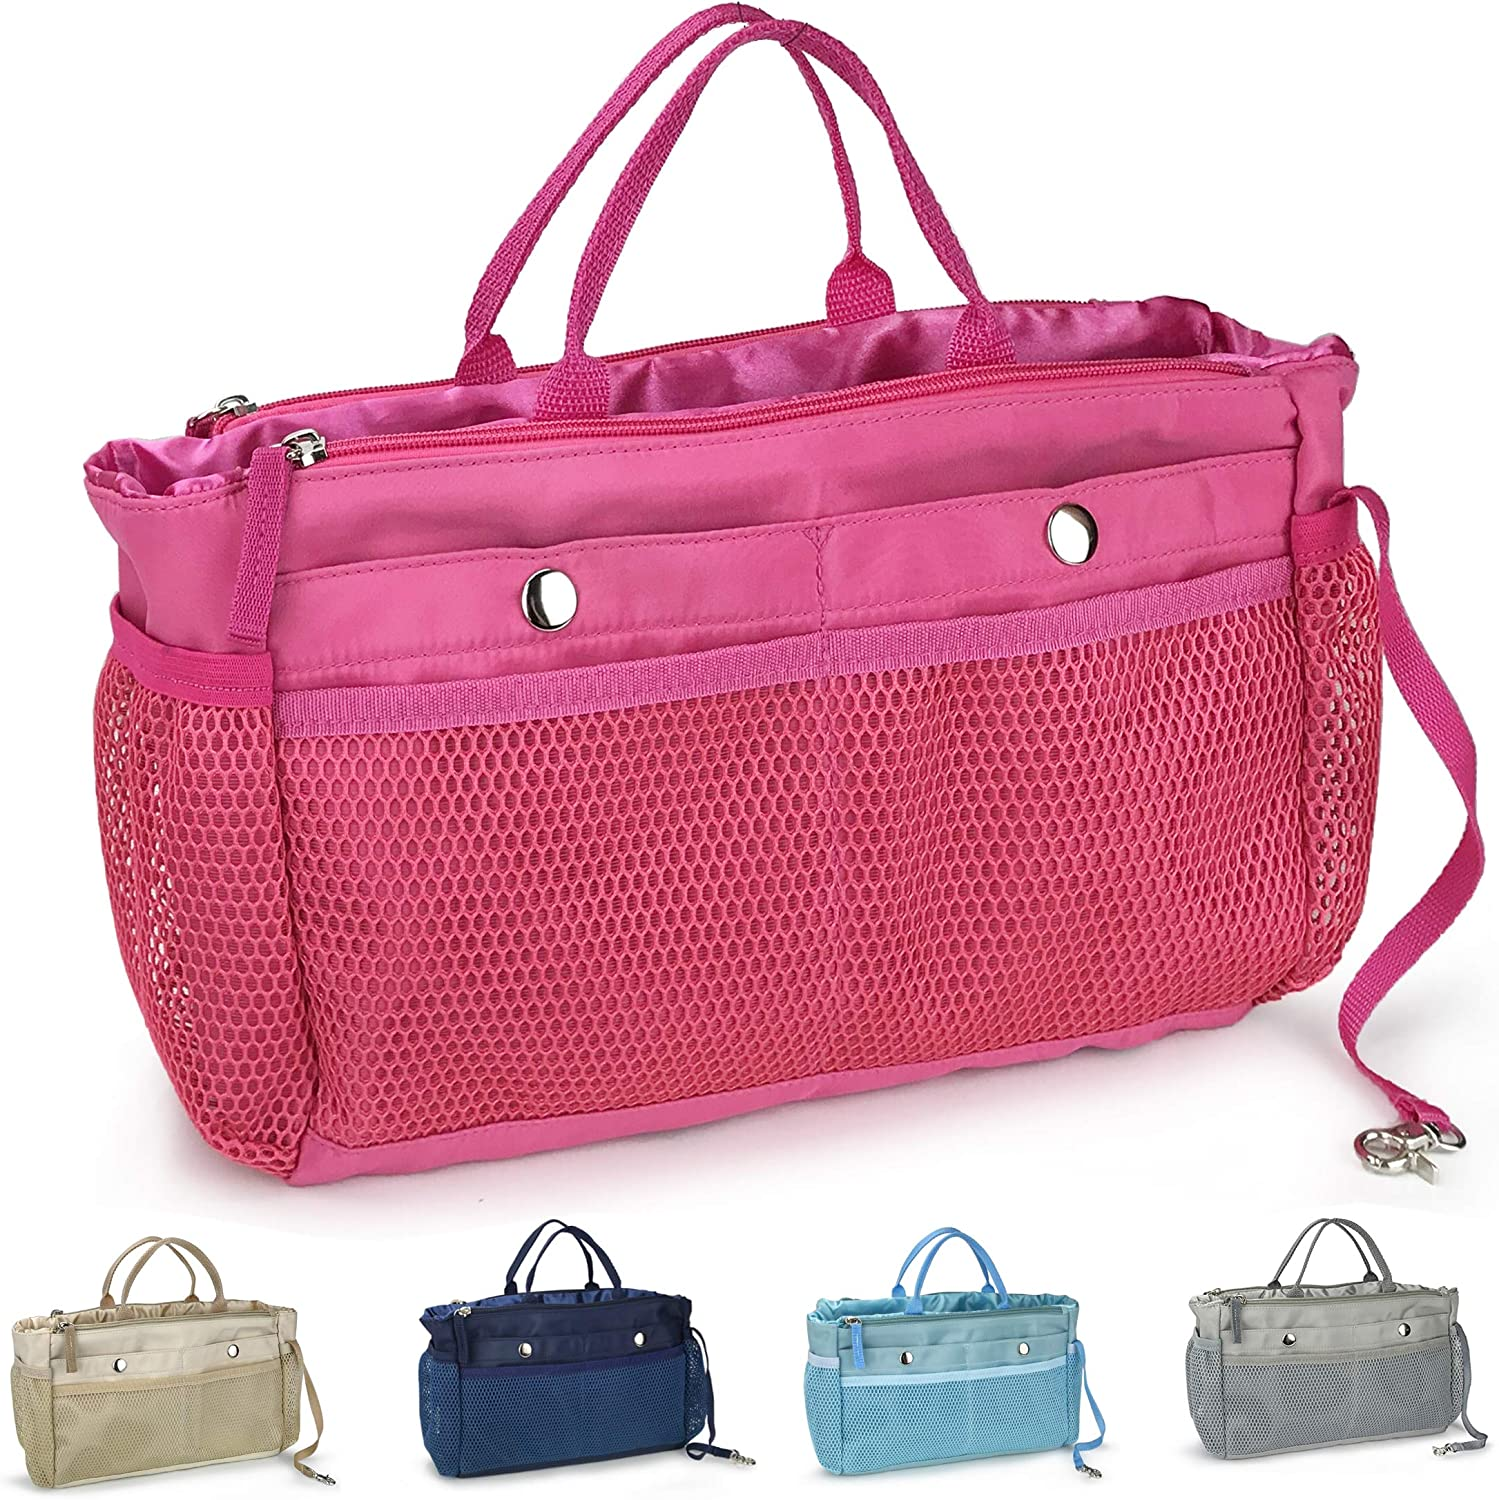 Handbag Organizer Insert 15 Pockets Purse Tote Insert with Convertible Drawstring Pouch (Hot Pink)